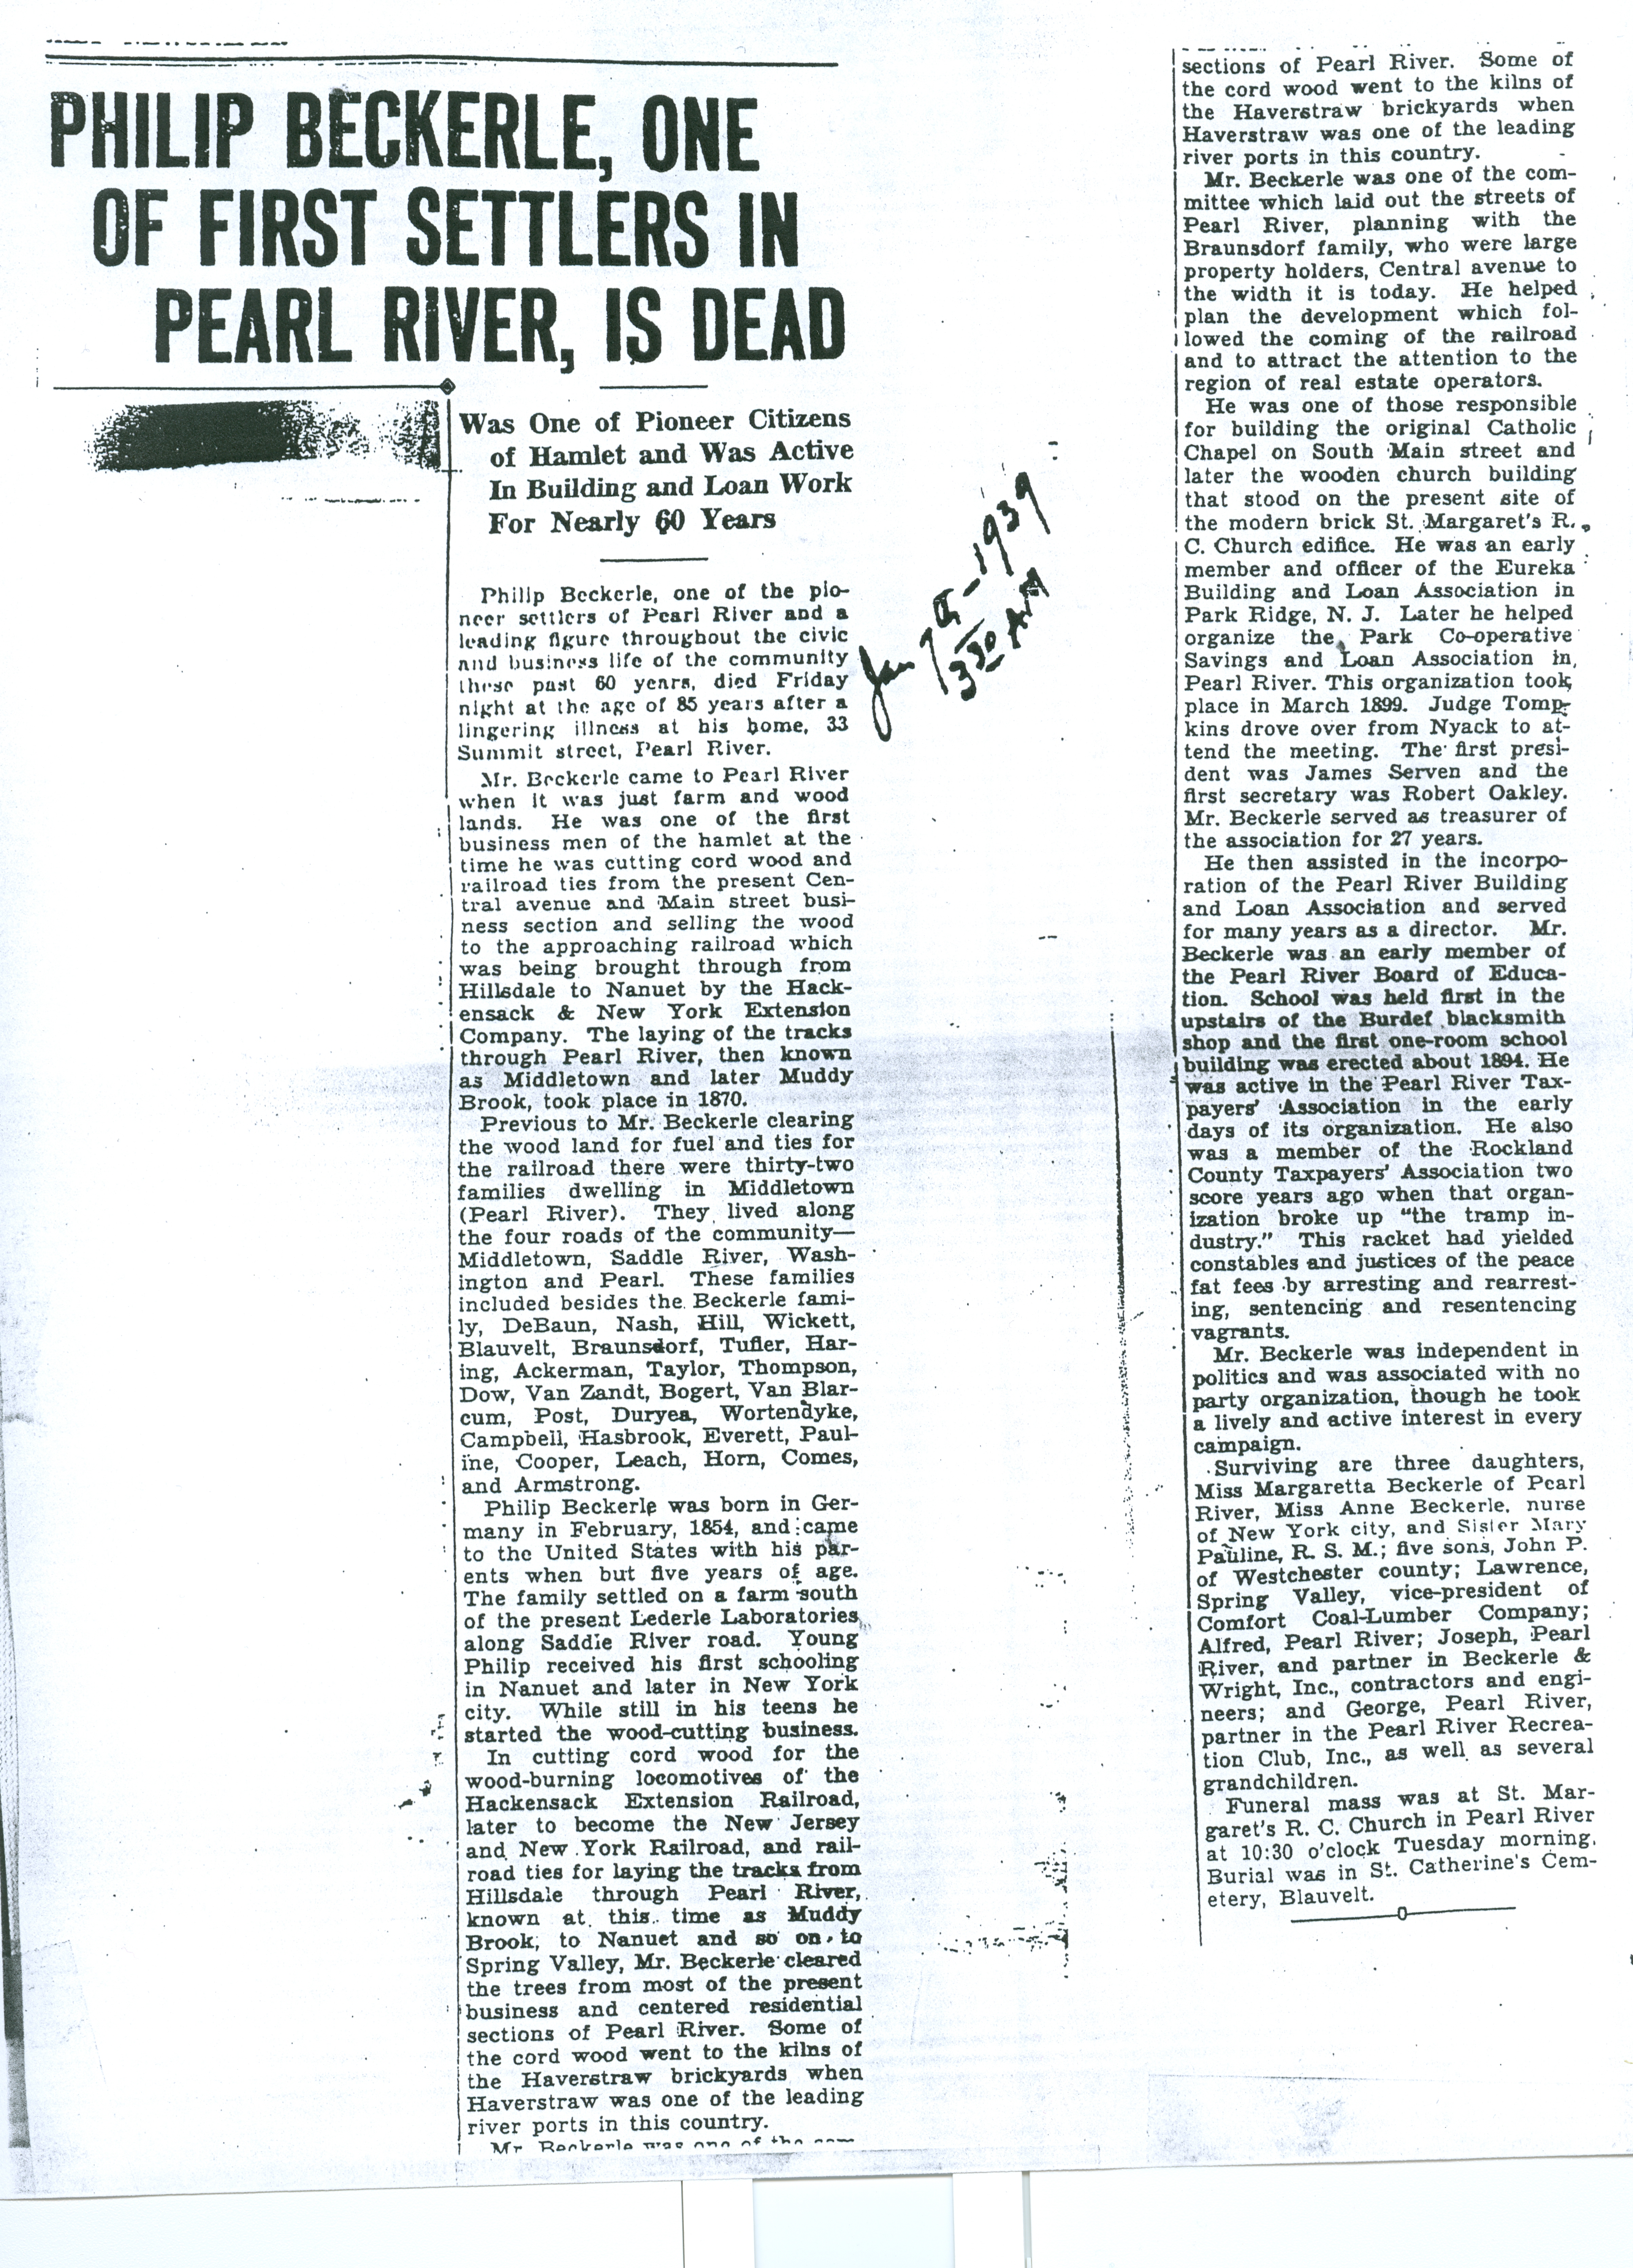 Philip Beckerle one of first settlers in Pearl River is dead: 7 Jan 1939 @3:30am